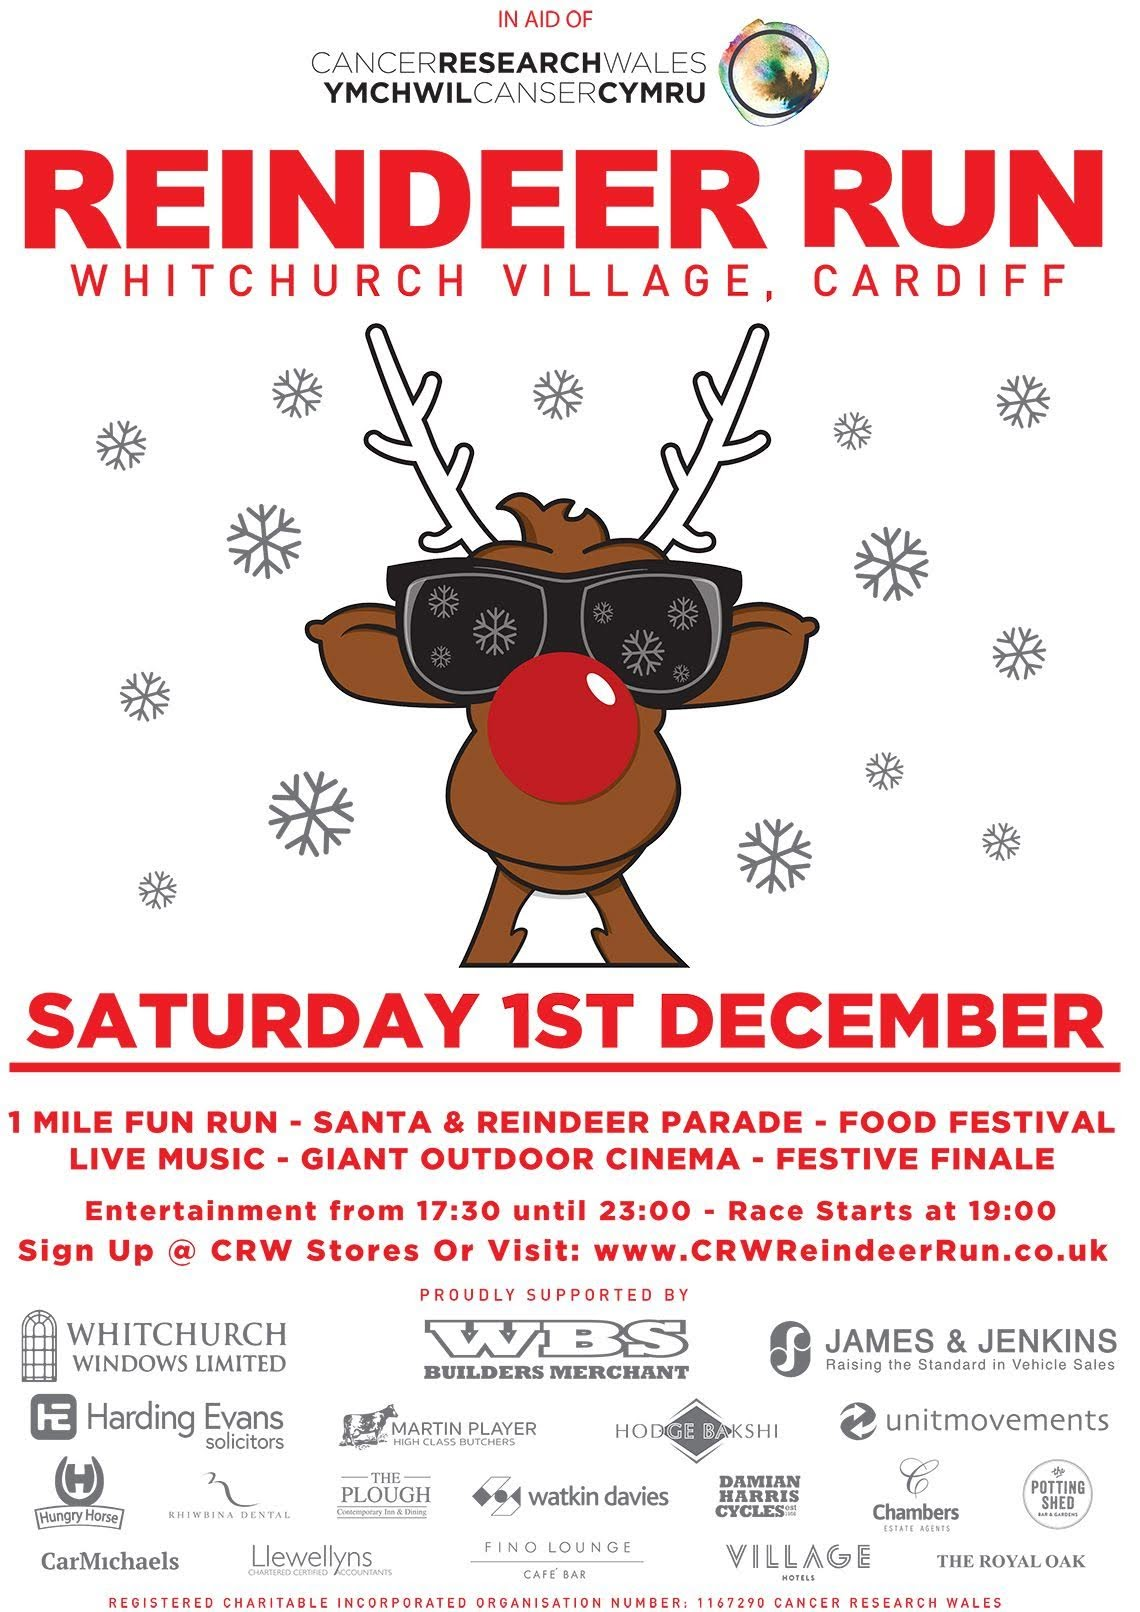 Cancer Research Wales Reindeer Run 2018 Poster